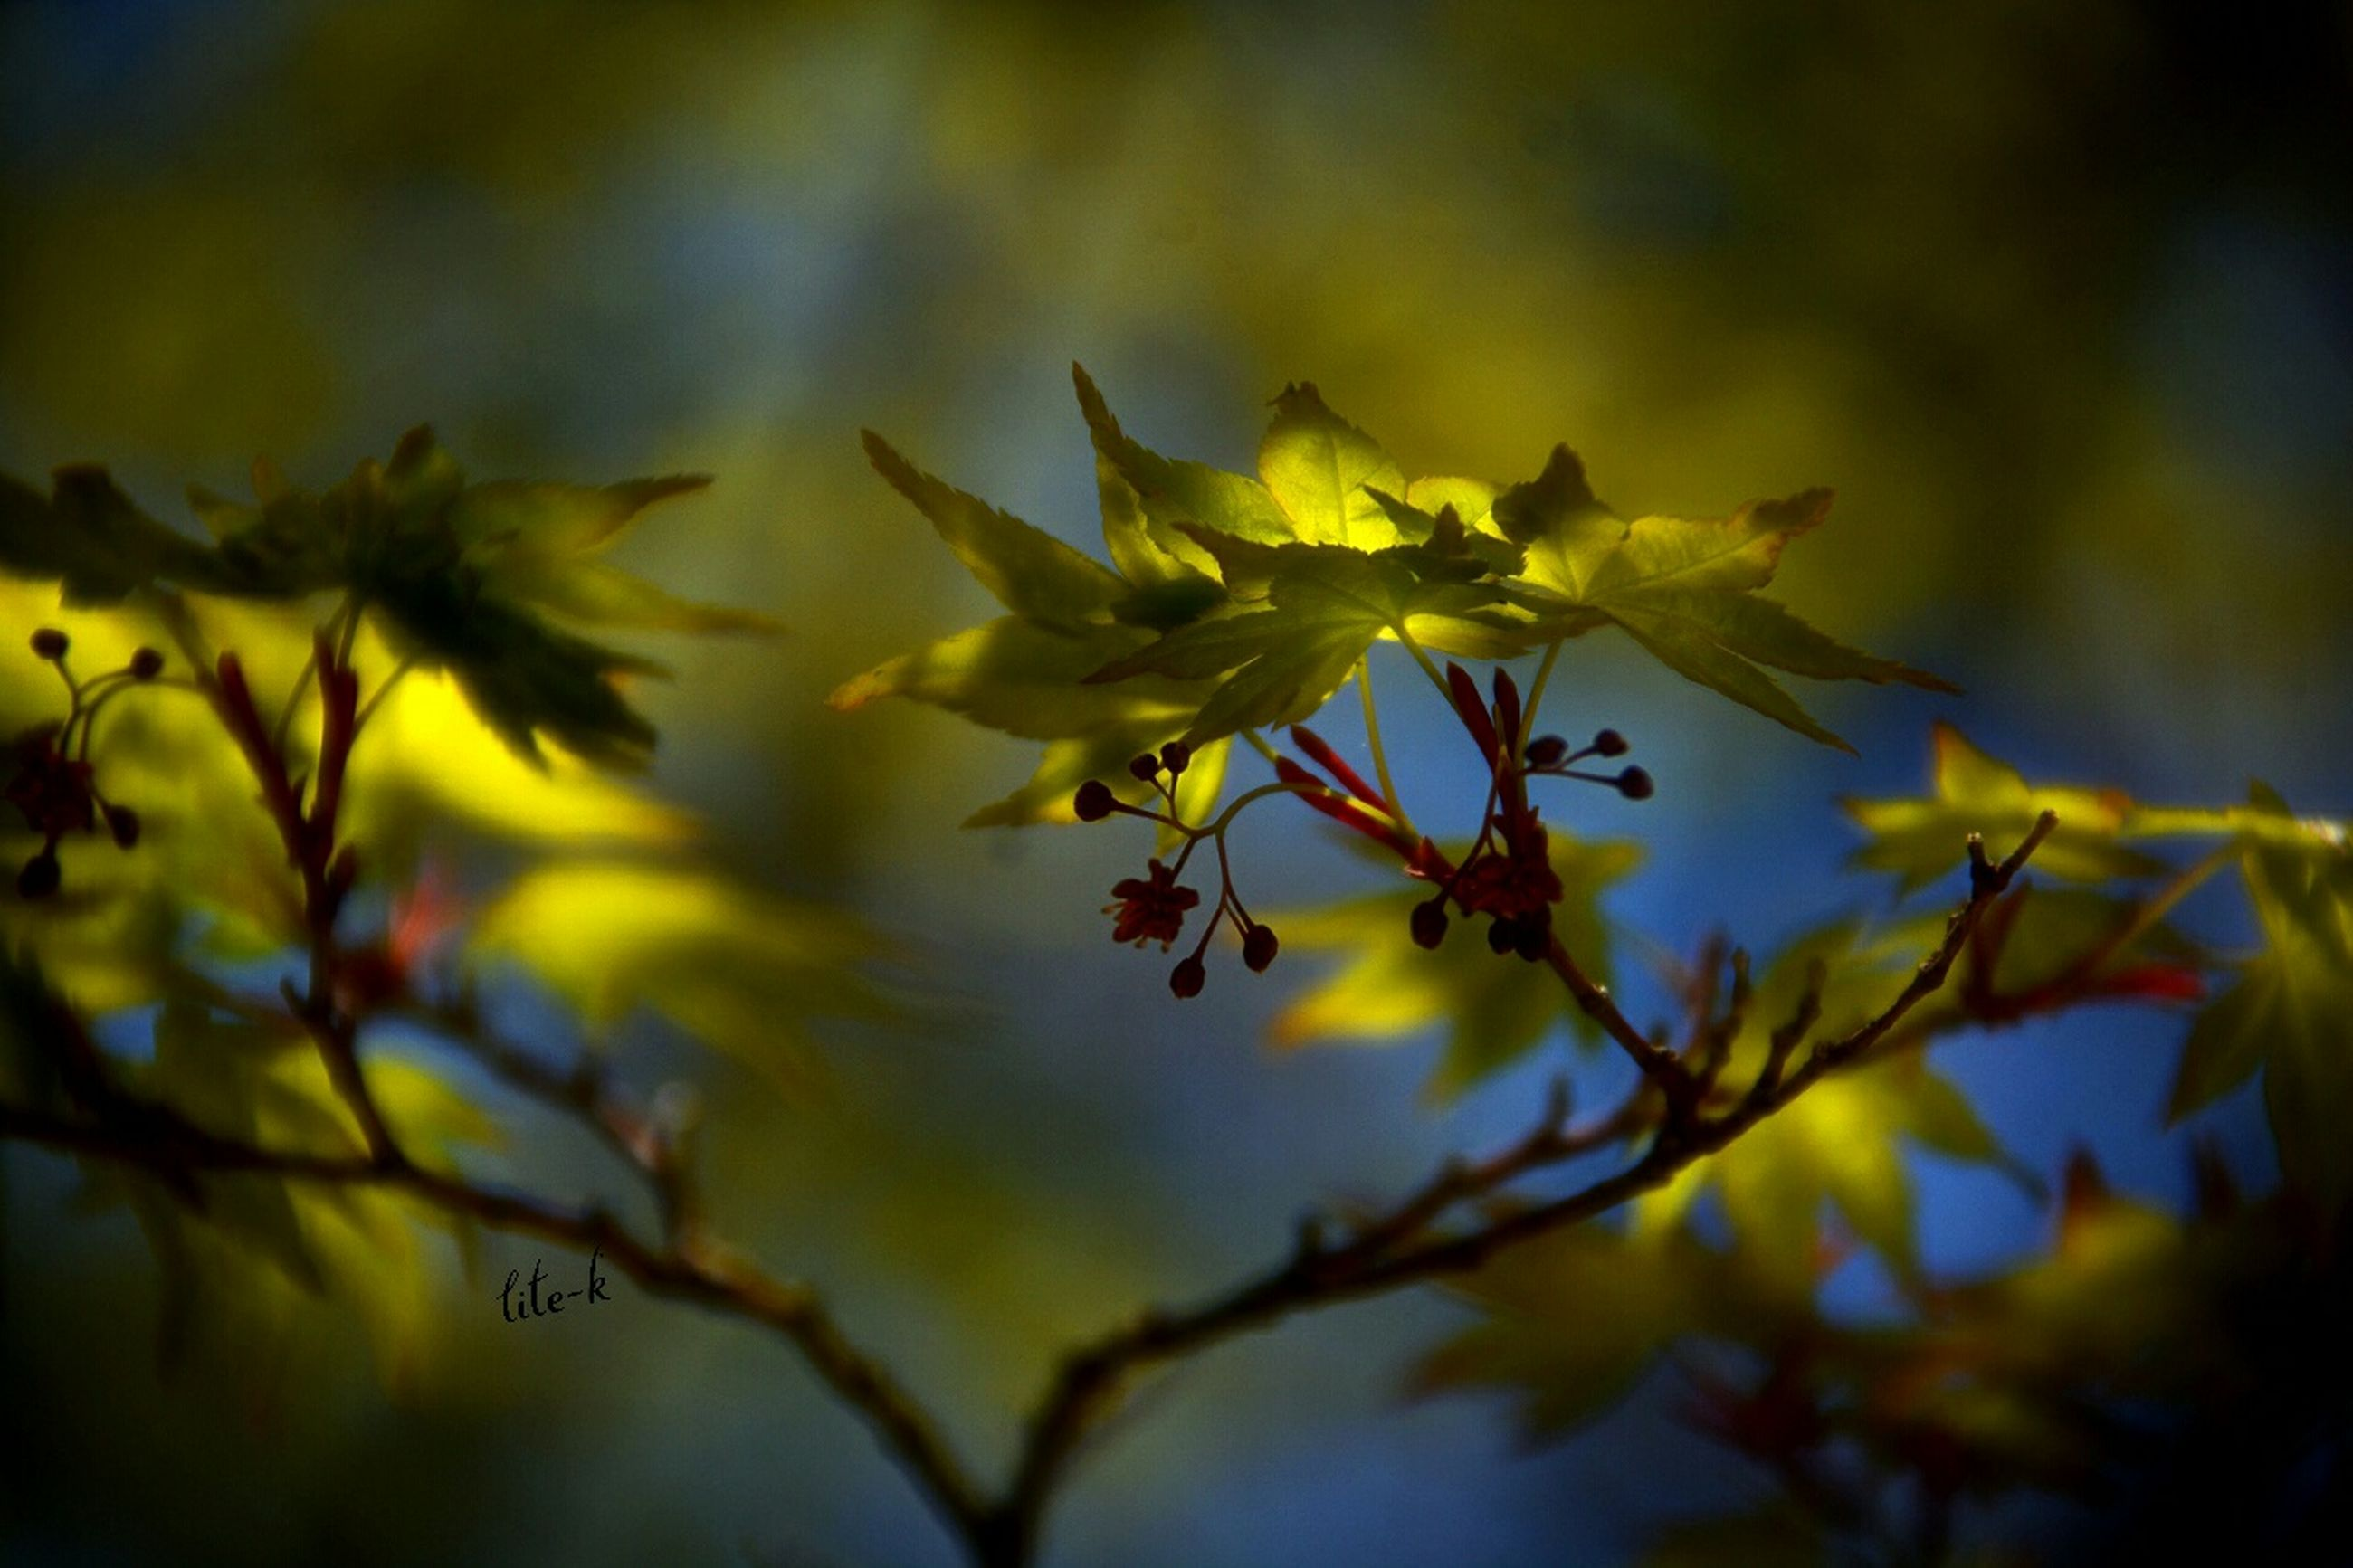 growth, focus on foreground, yellow, branch, nature, close-up, tree, beauty in nature, flower, leaf, selective focus, low angle view, freshness, twig, outdoors, fragility, season, plant, day, no people